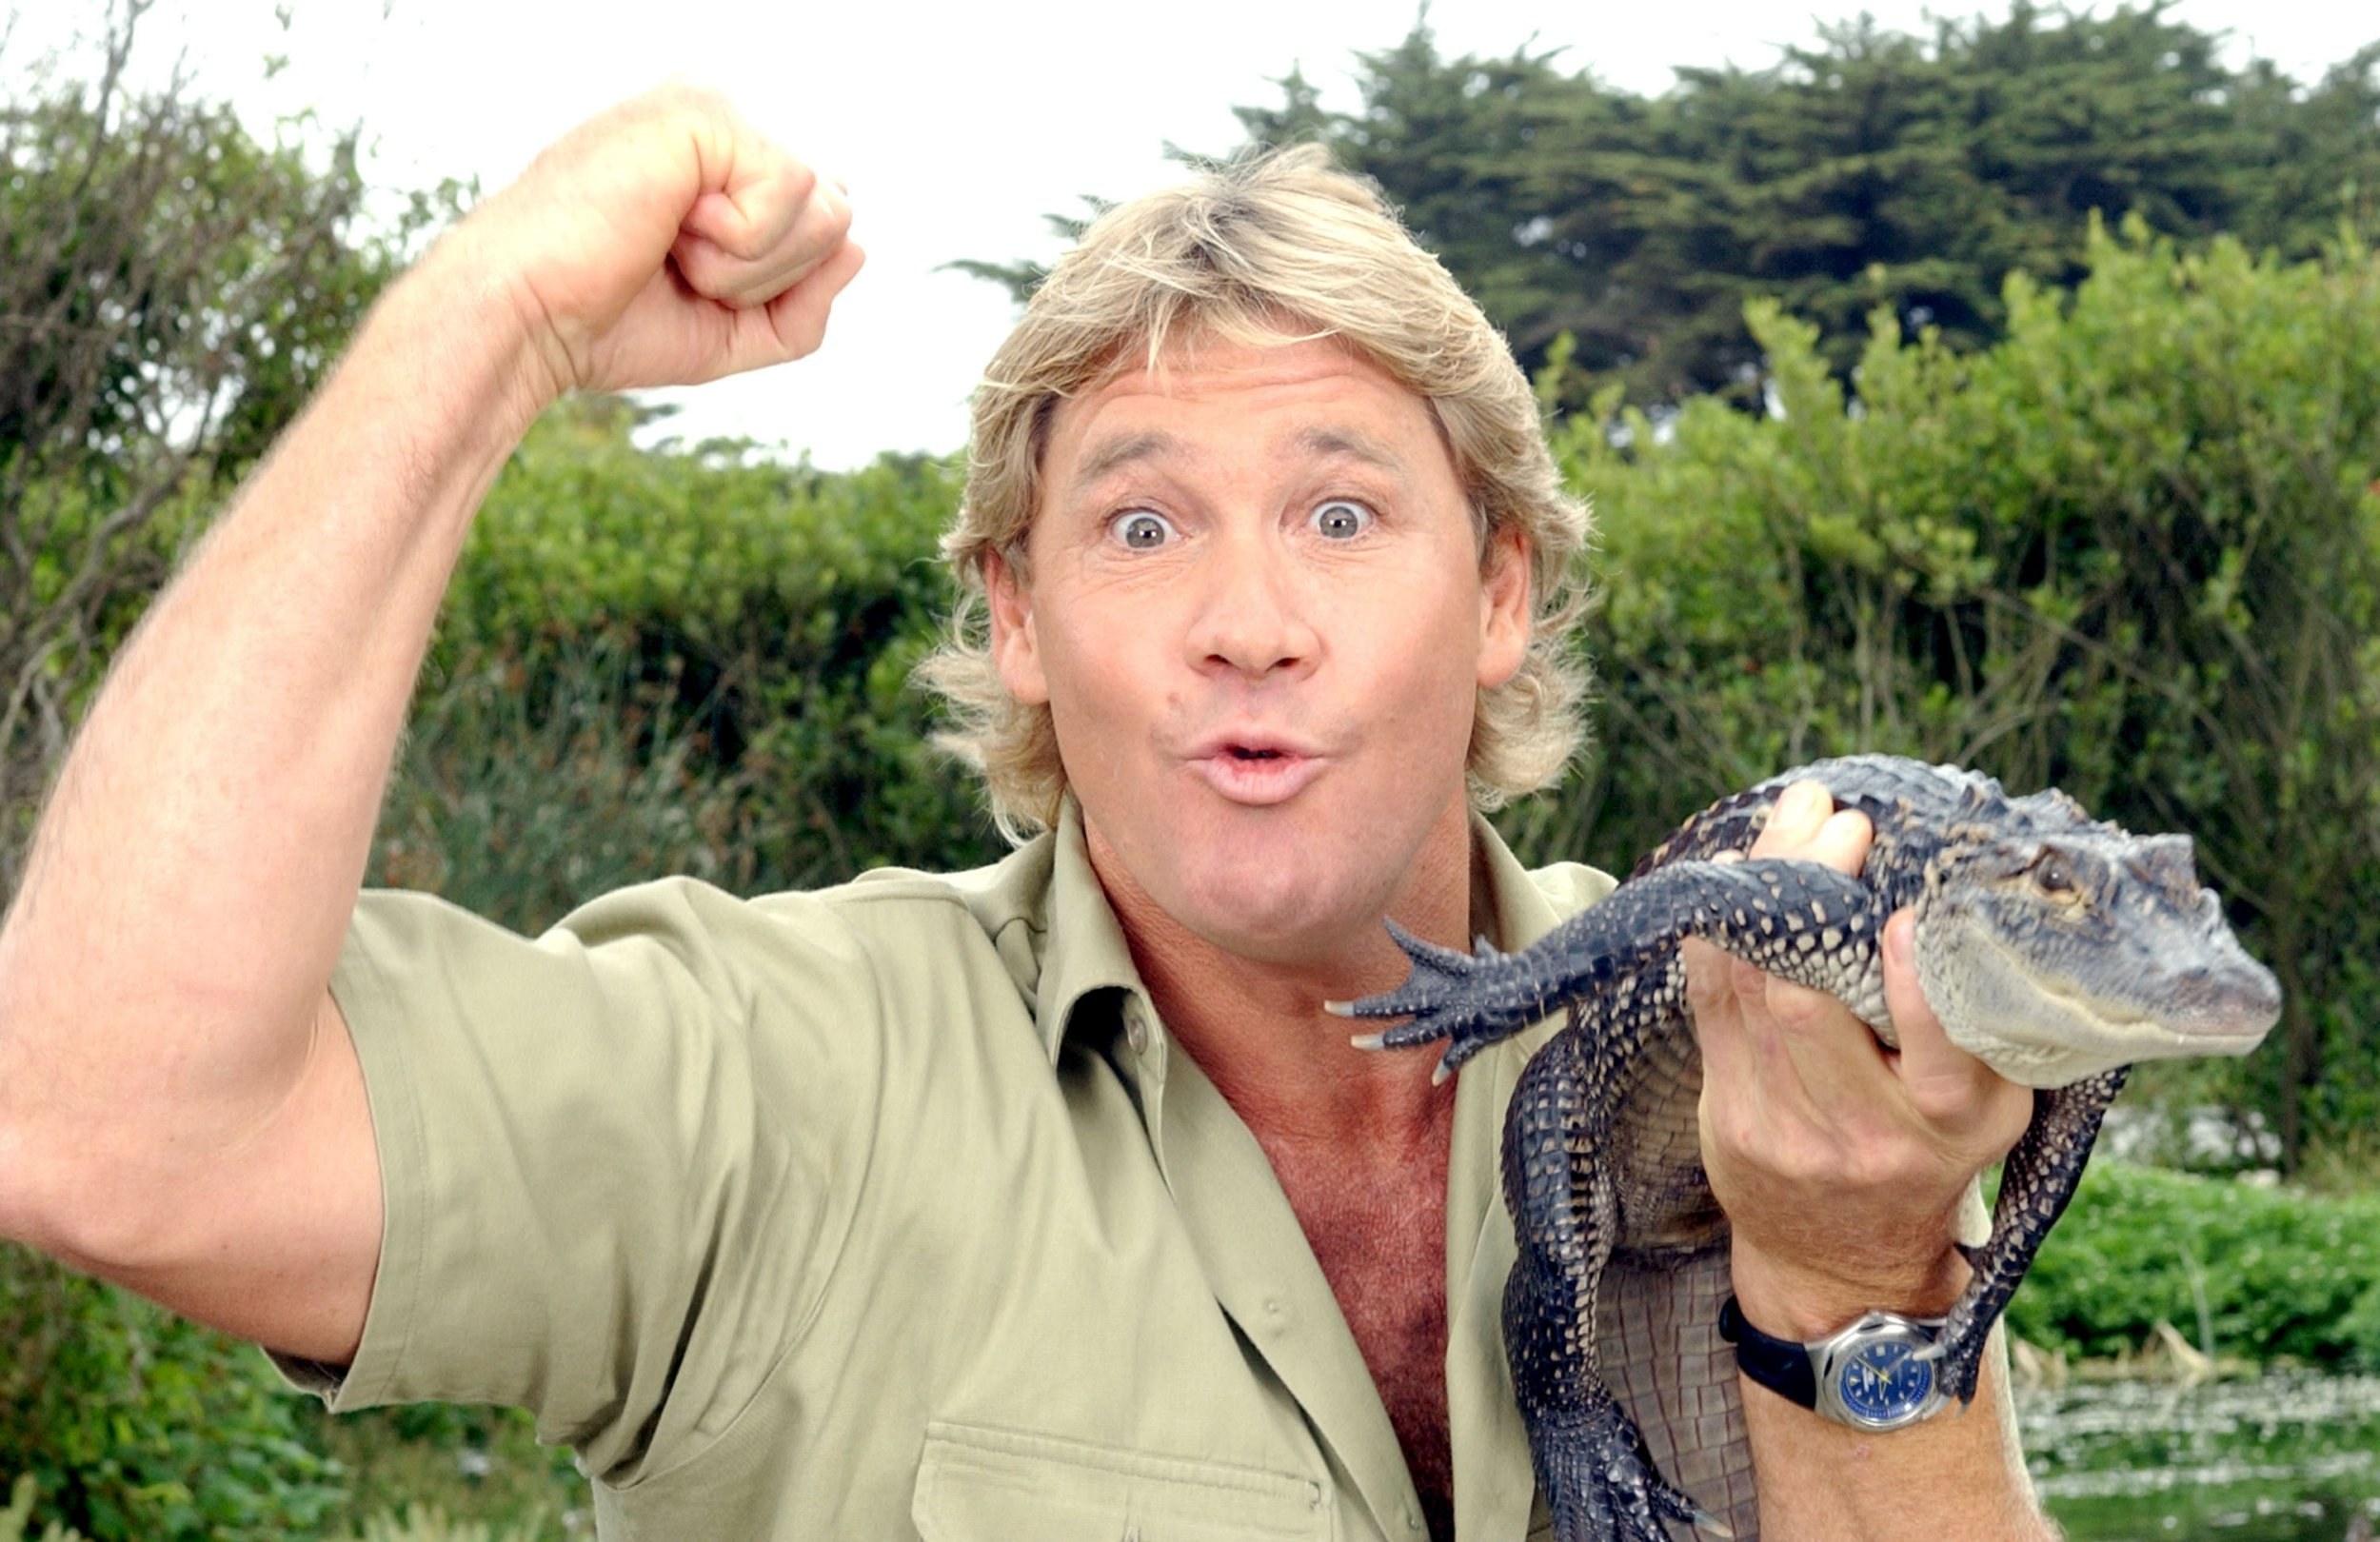 "SAN FRANCISCO - JUNE 26: ***EXCLUSIVE*** ""The Crocodile Hunter"", Steve Irwin, poses with a three foot long alligator at the San Francisco Zoo on June 26, 2002 in San Francisco, California. Irwin is on a 3-week tour to promote the release of his first feature film, ""The Crocodile Hunter: Collision Course"", due in theaters July 12th. (Photo by Justin Sullivan/Getty Images)"